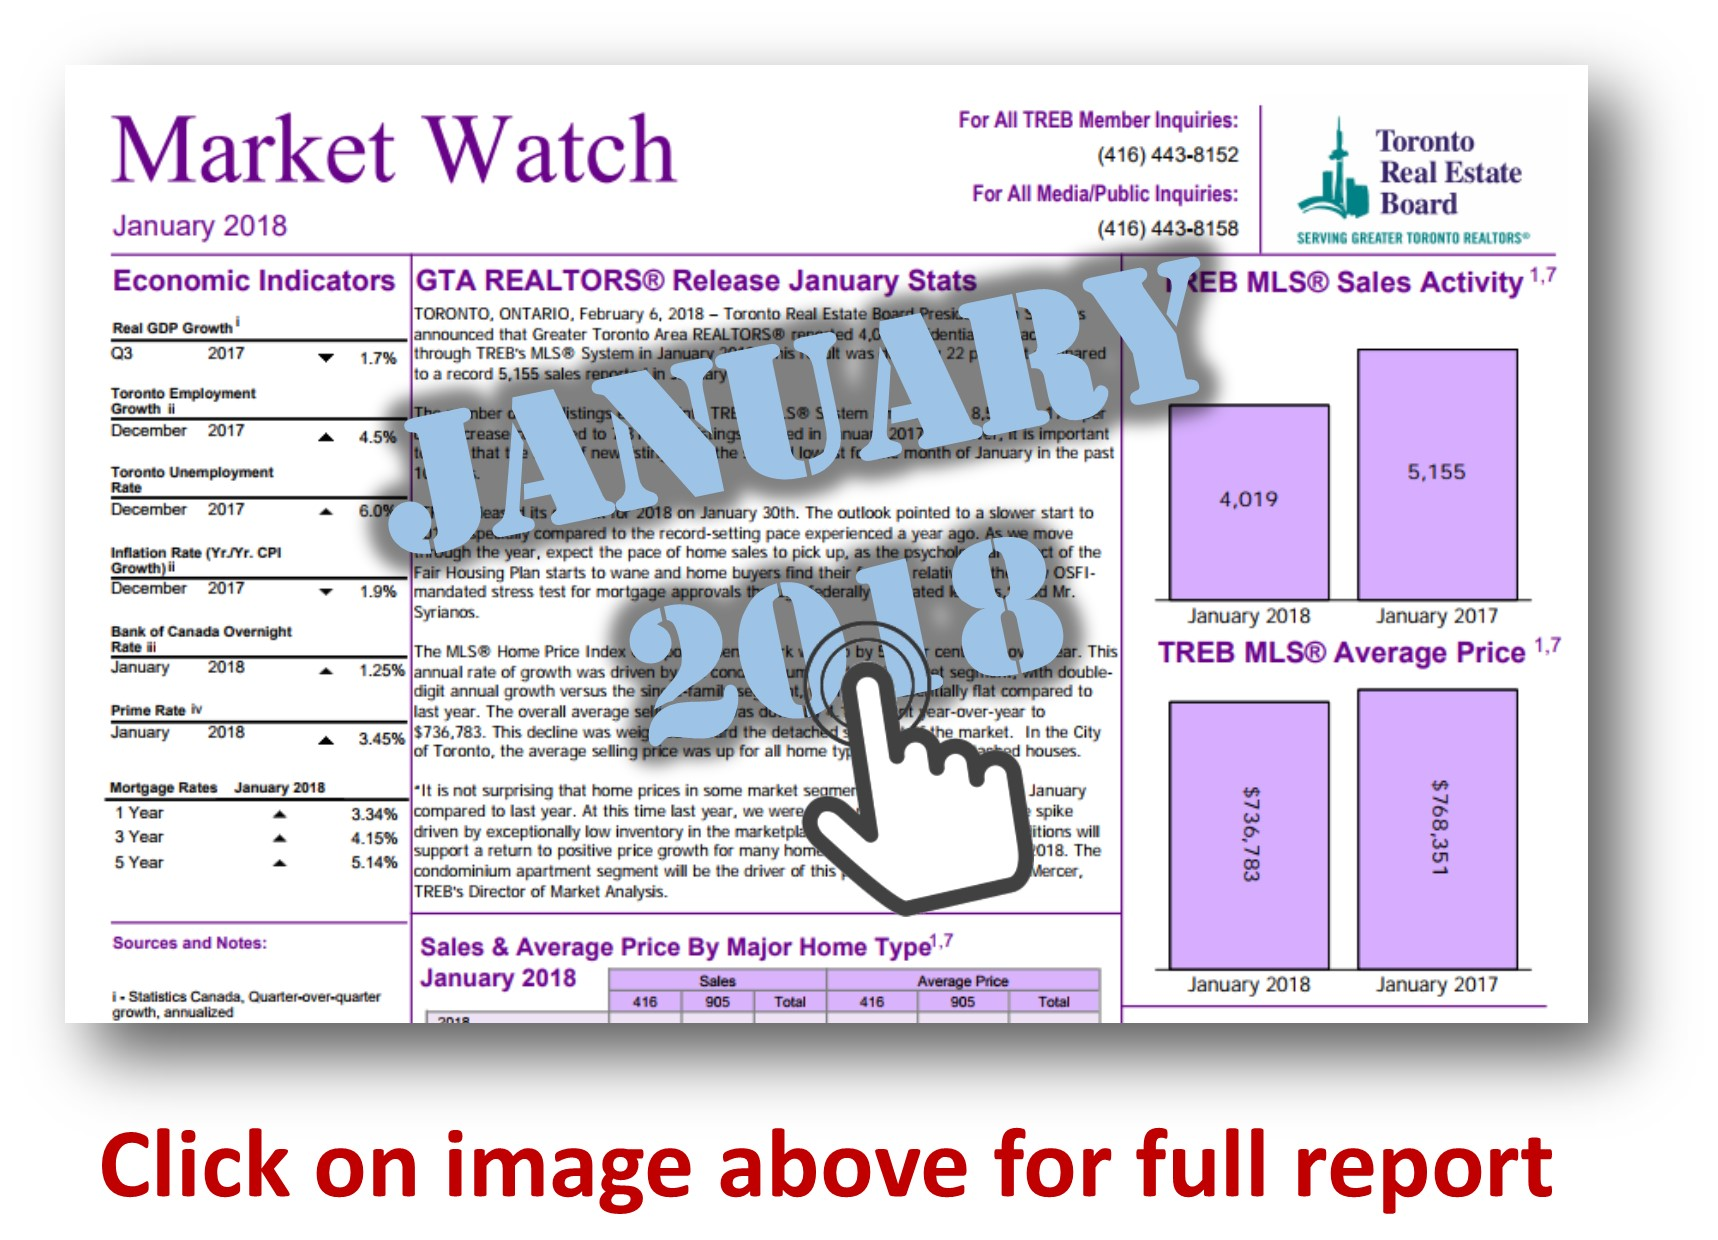 TREB MW FRONT PAGE January 2018.jpg